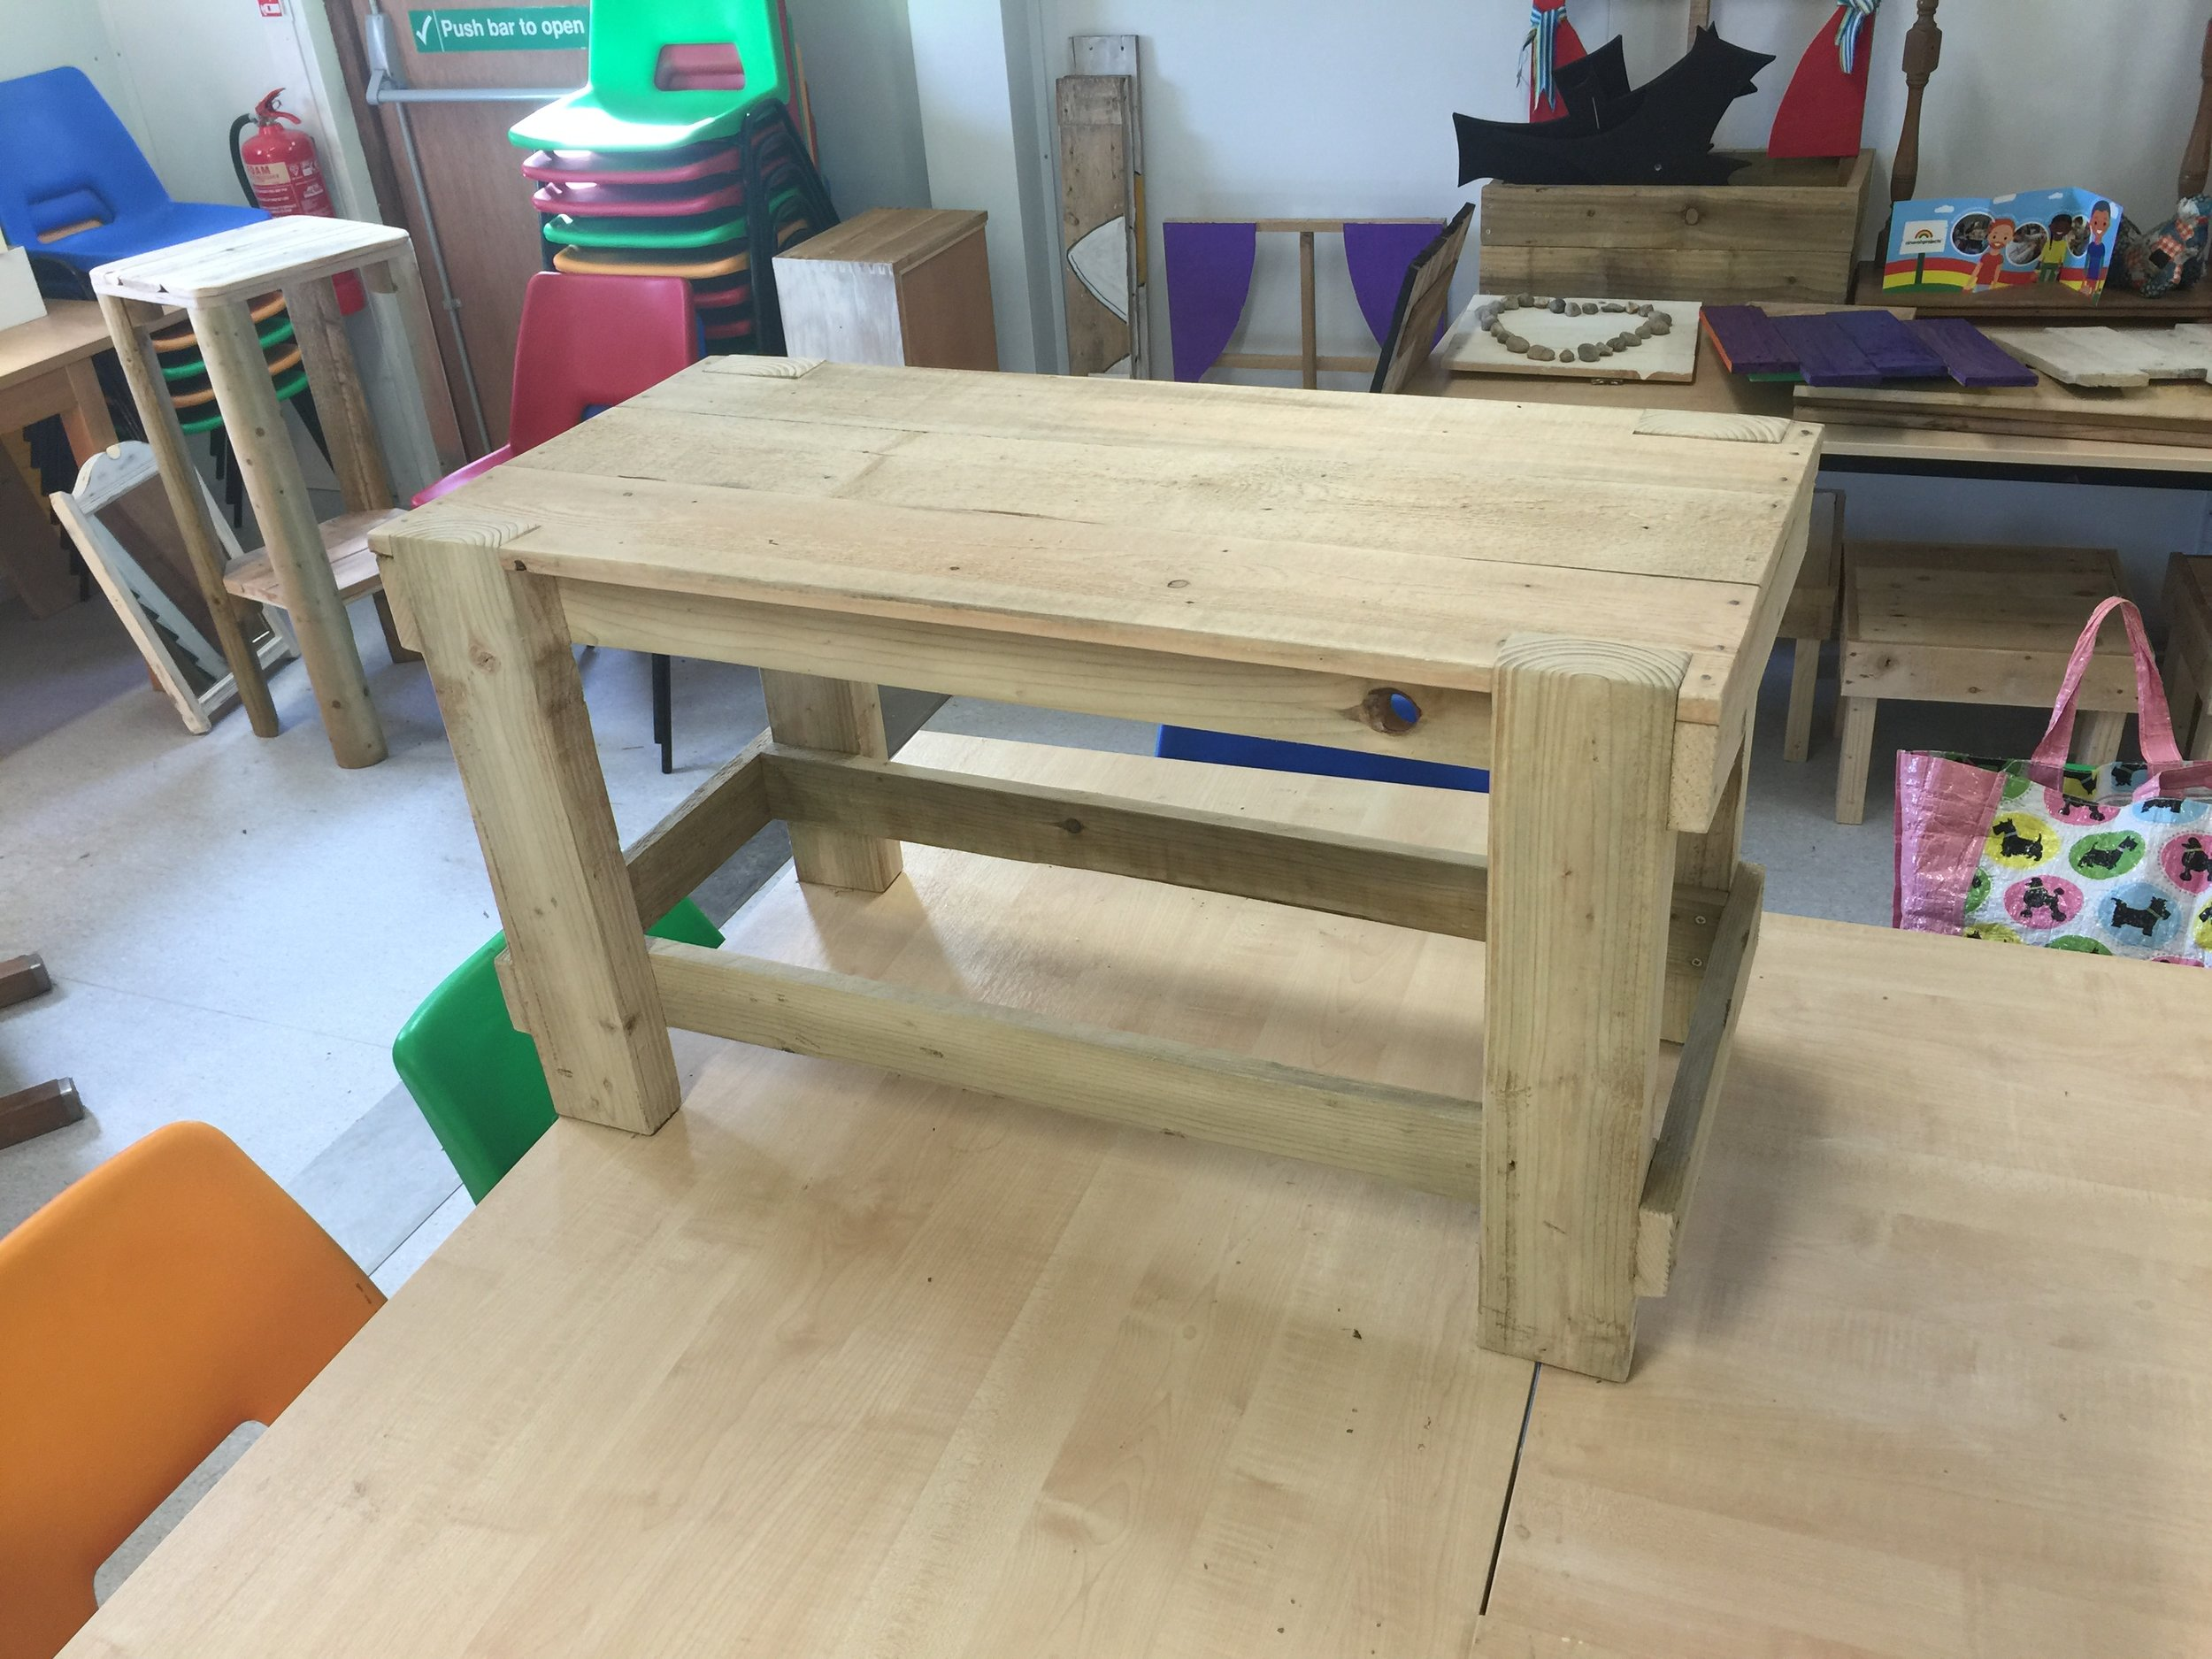 Pallet Table: 92x42cm x 51 high £50: Can be painted or stained.